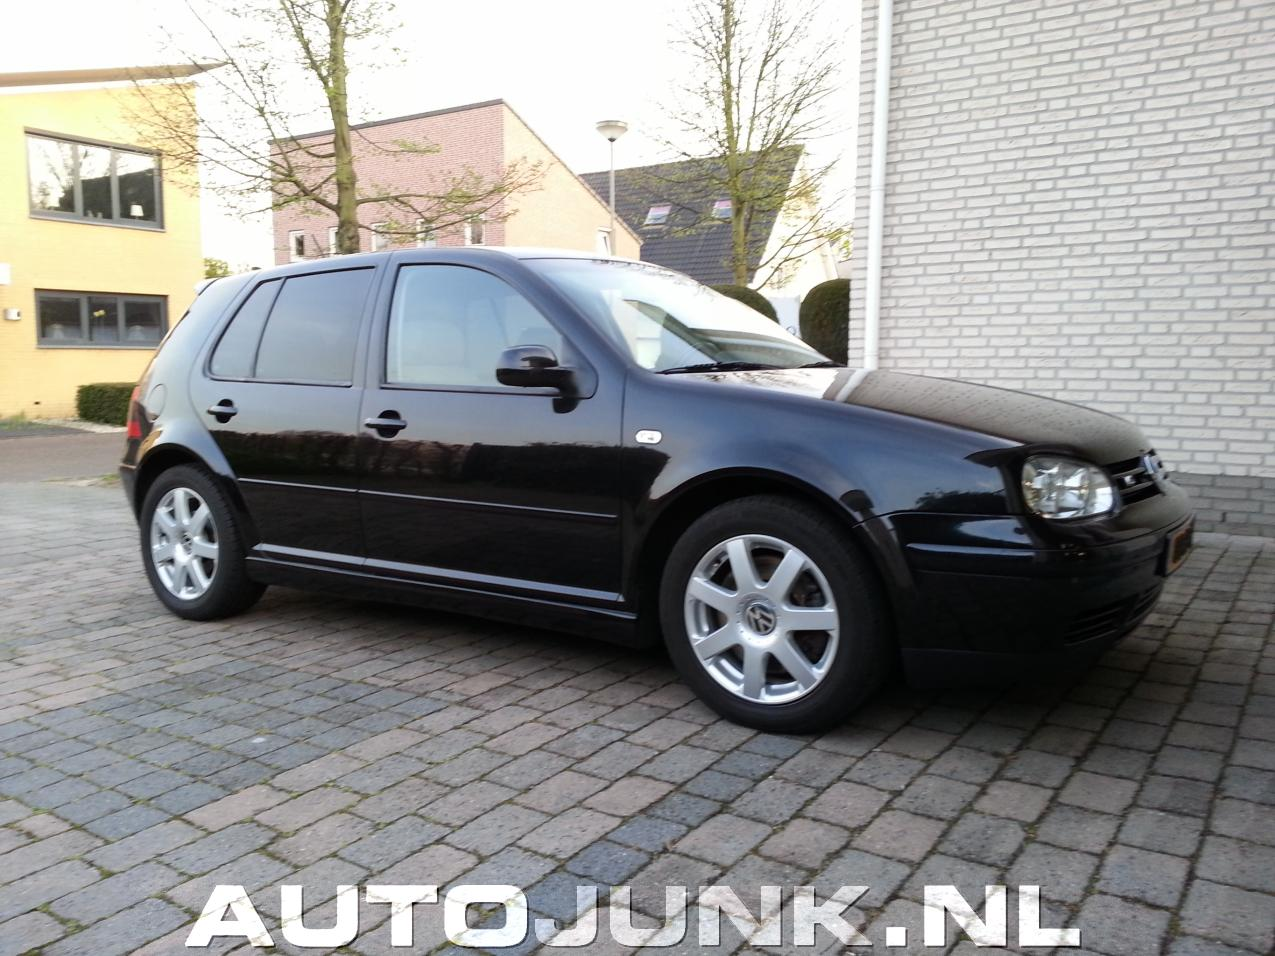 volkswagen golf iv v5 foto 39 s 147715. Black Bedroom Furniture Sets. Home Design Ideas